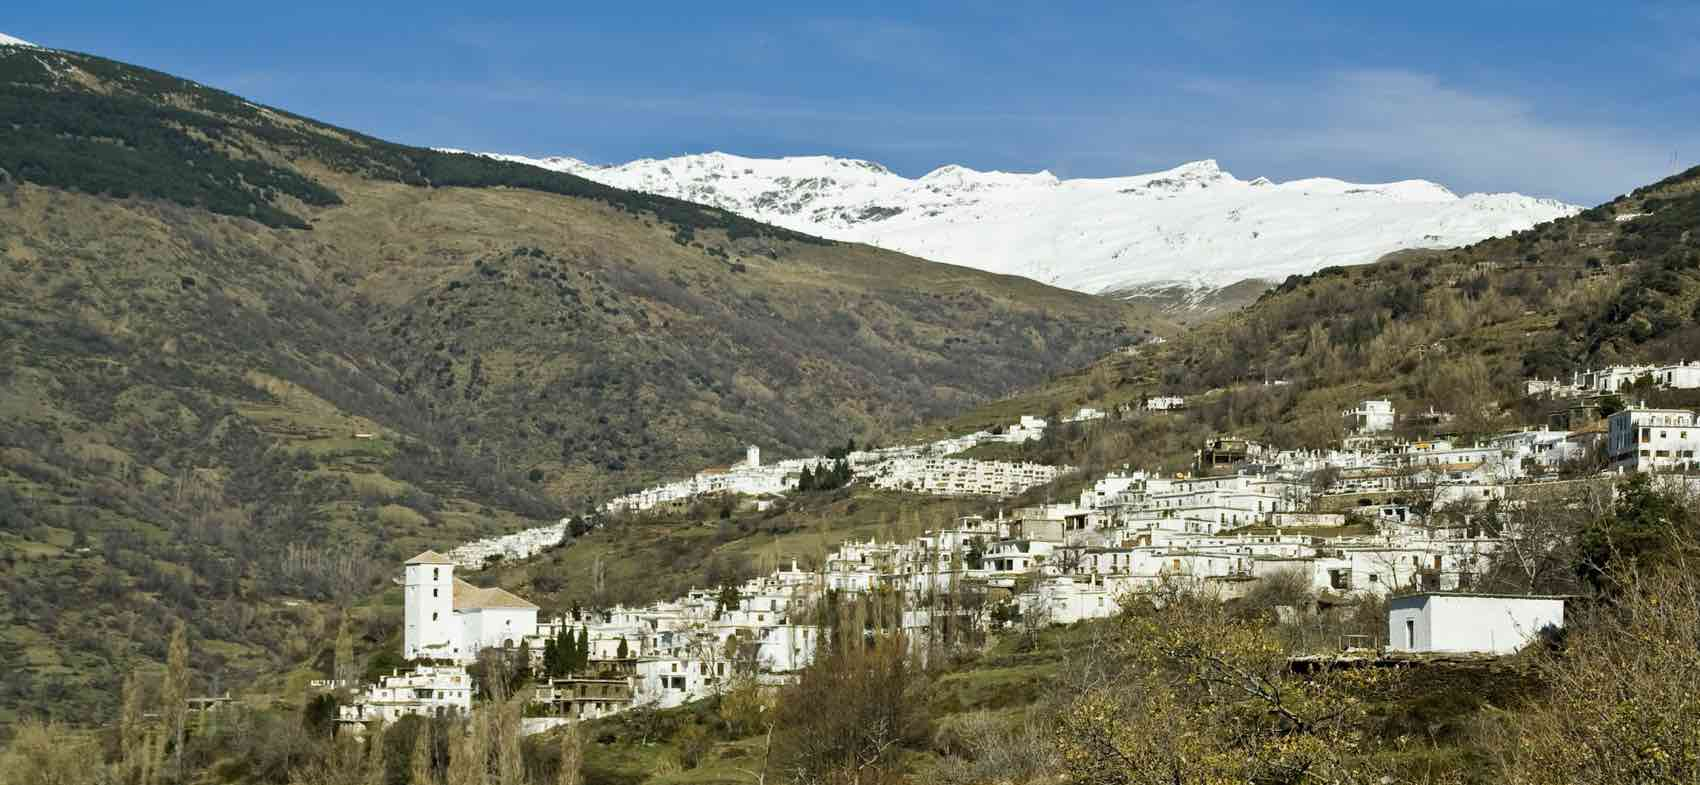 Alpujarra and snow on Sierra Nevada. A beautiful bike route of approximately 100 km